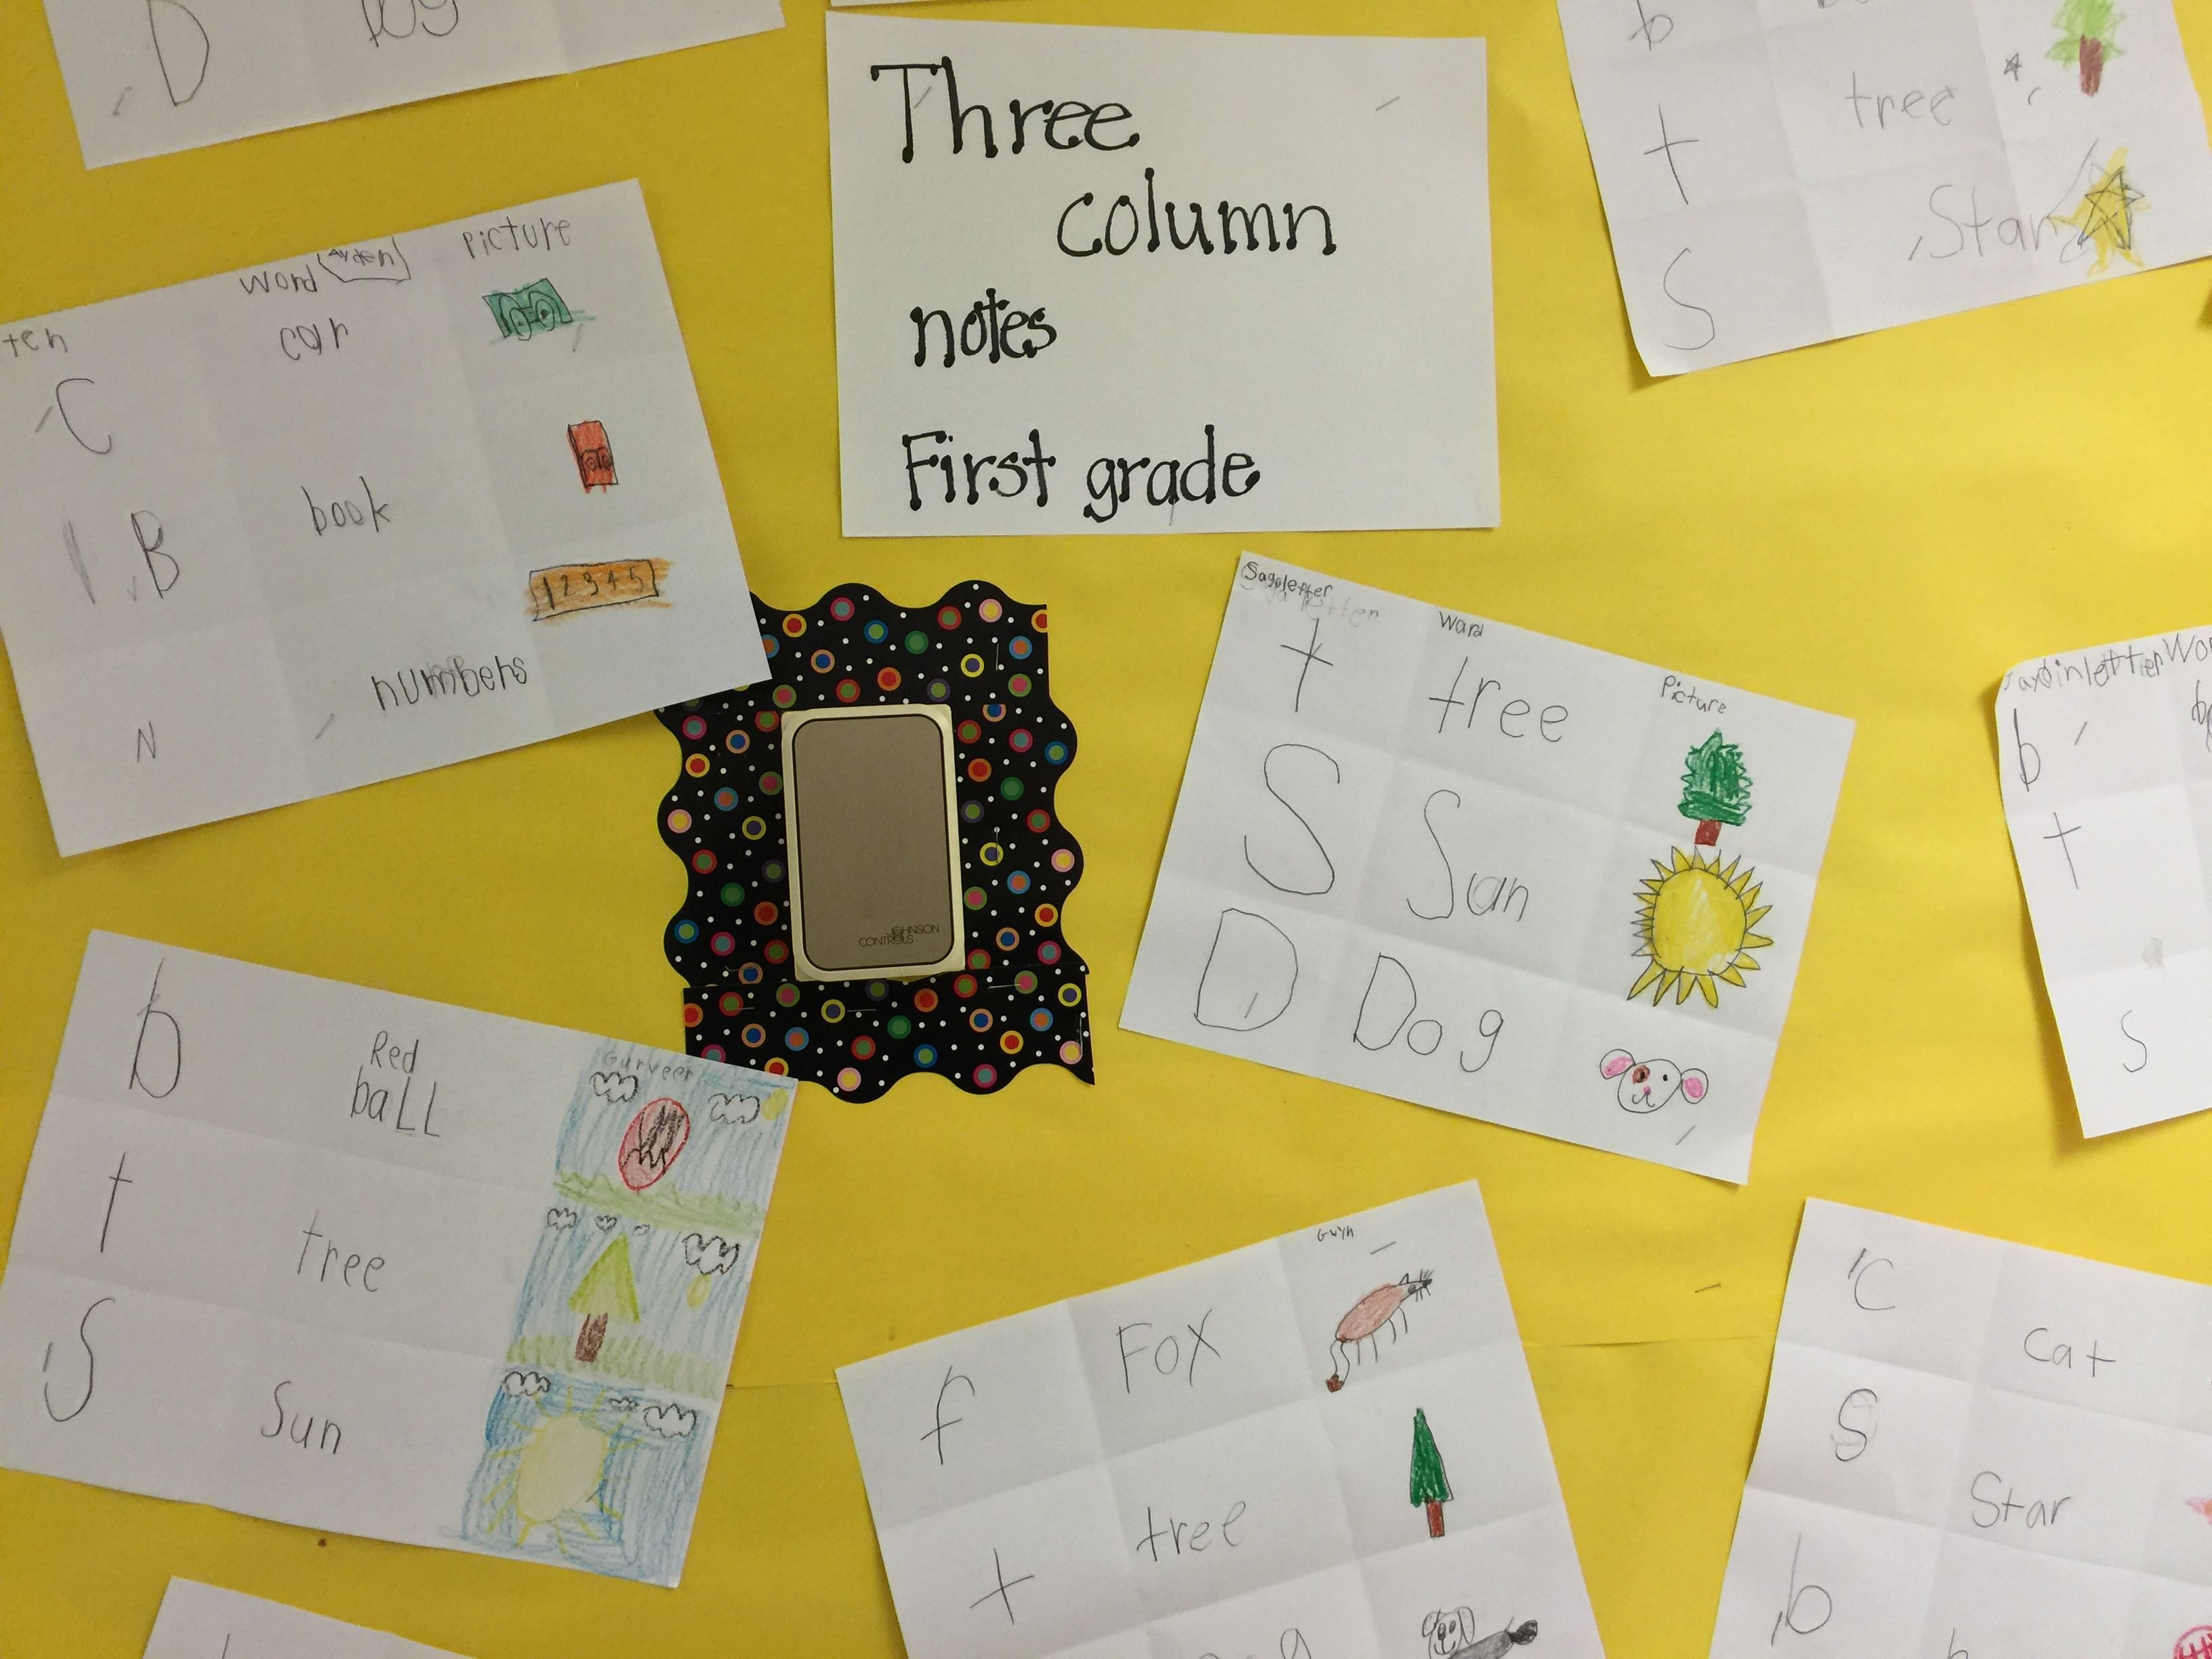 First Graders Learning To Write New Words In Three Column Notes Making Their Own Picture Of The